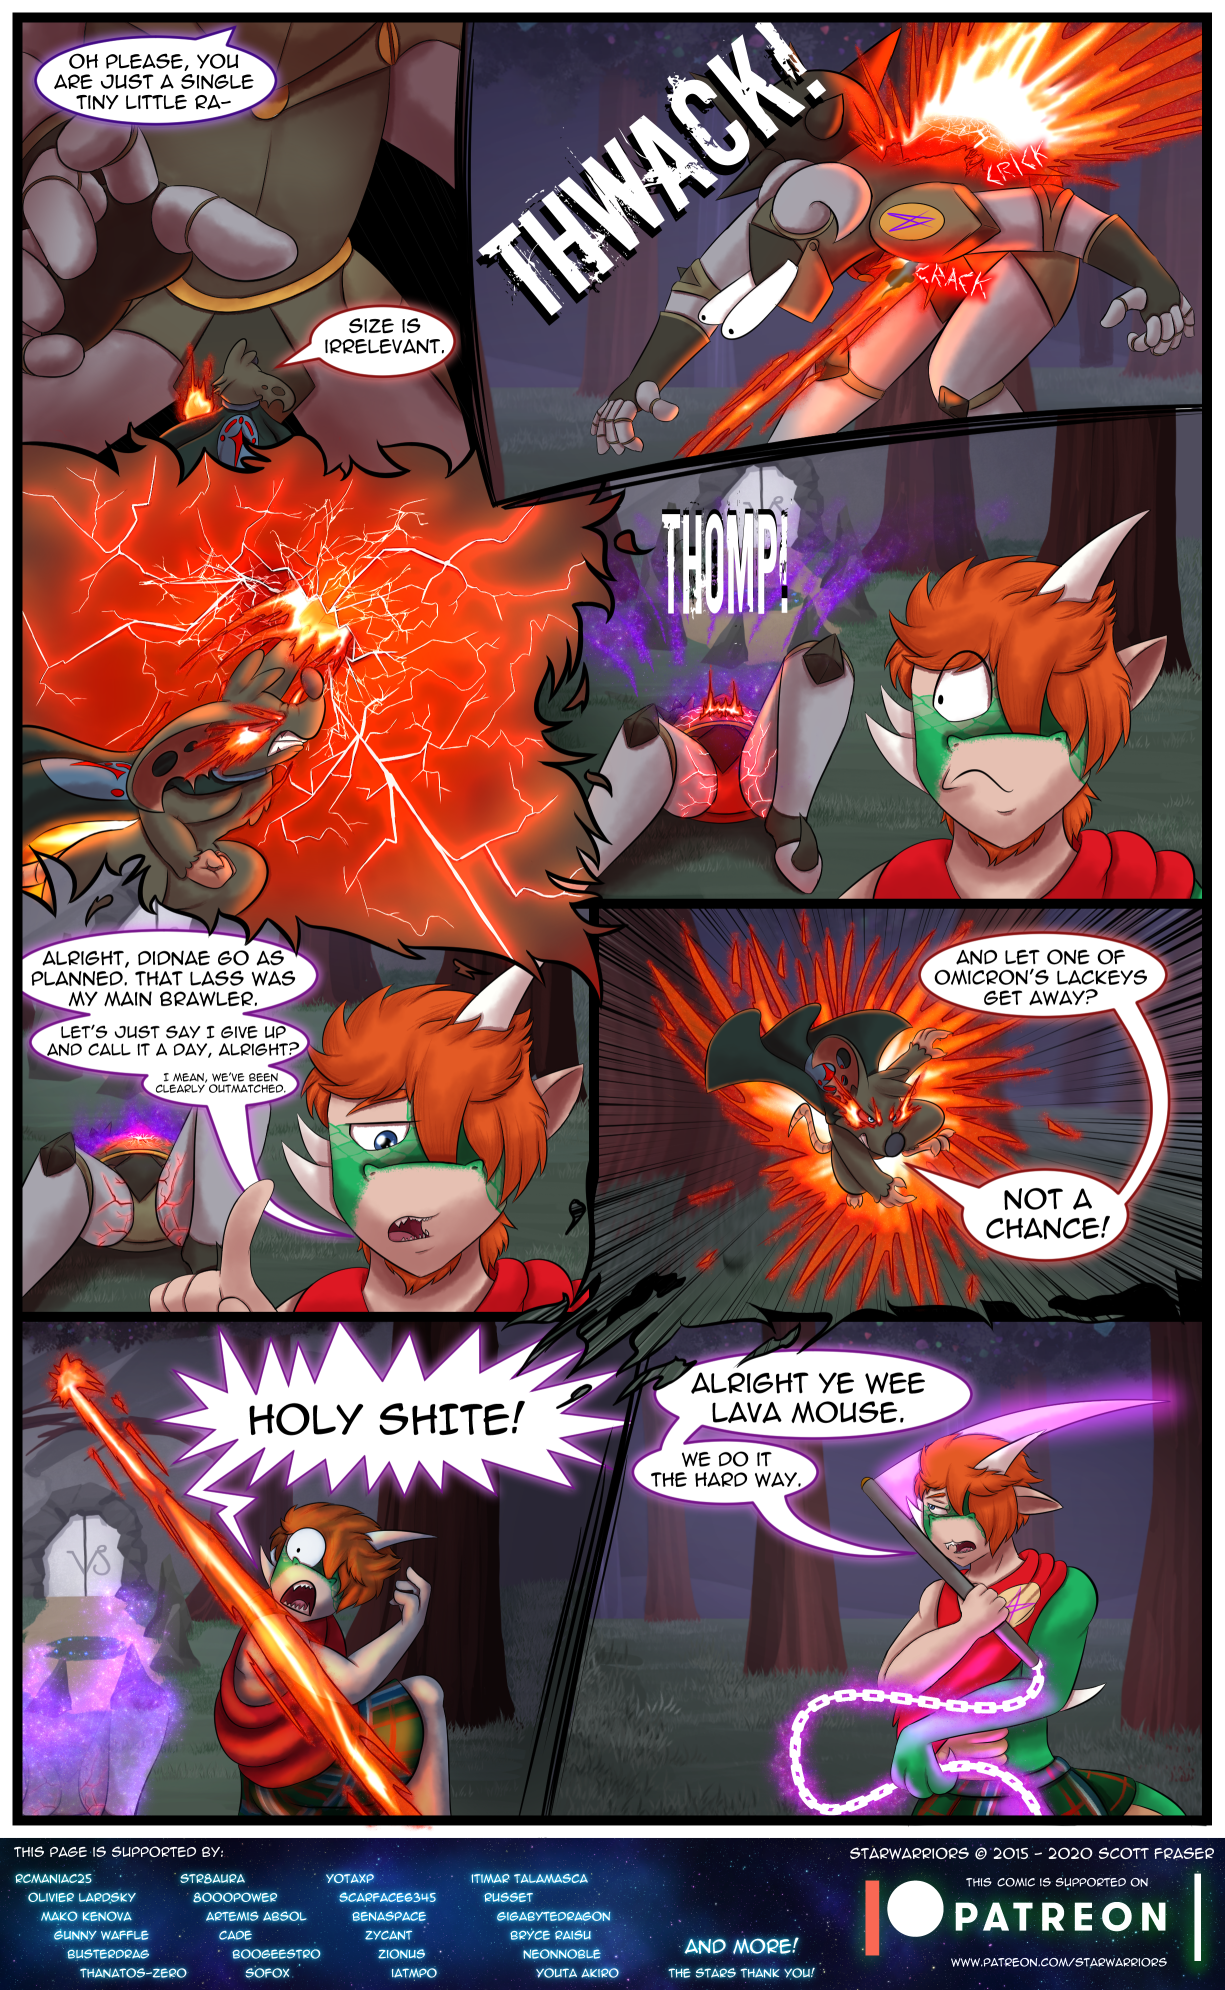 Ch5 Page 15 – Size Does Not Matter